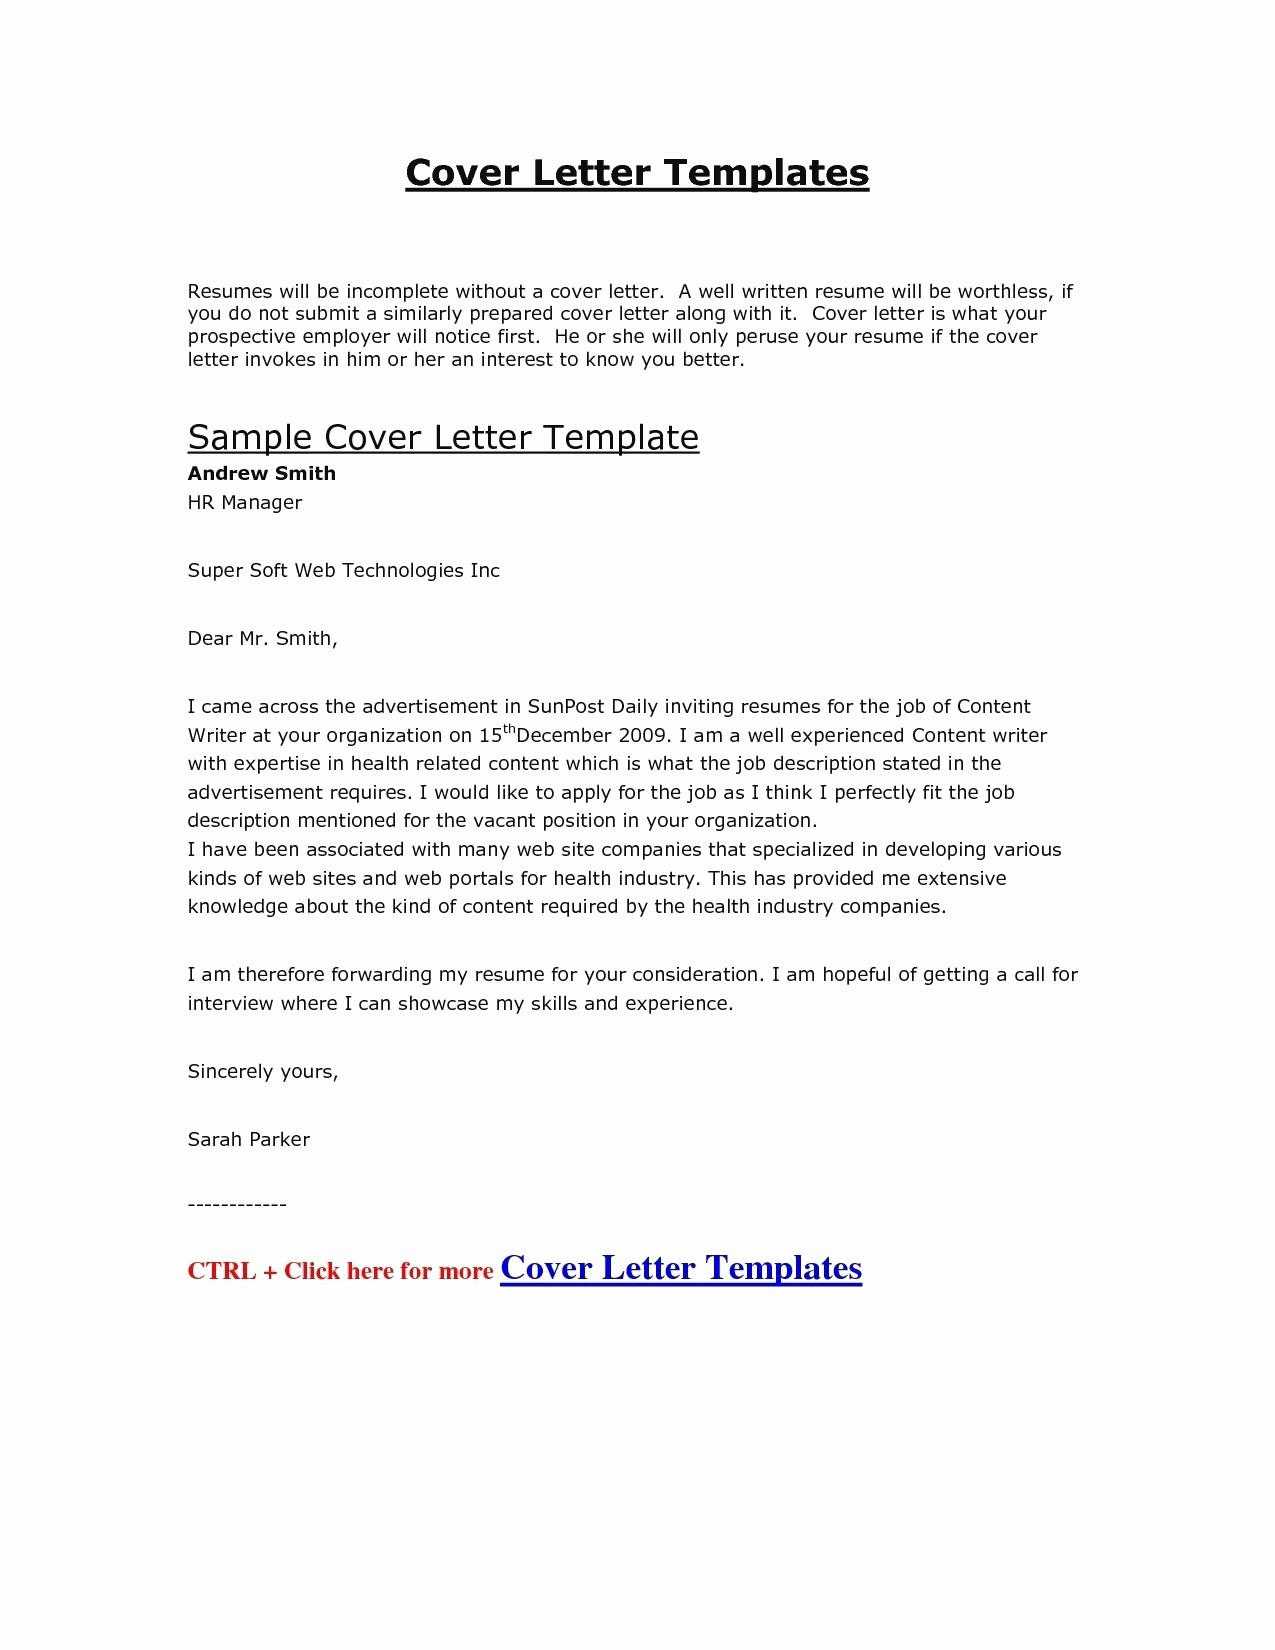 Template for Application Letter for Employment - Job Application Letter format Template Copy Cover Letter Template Hr